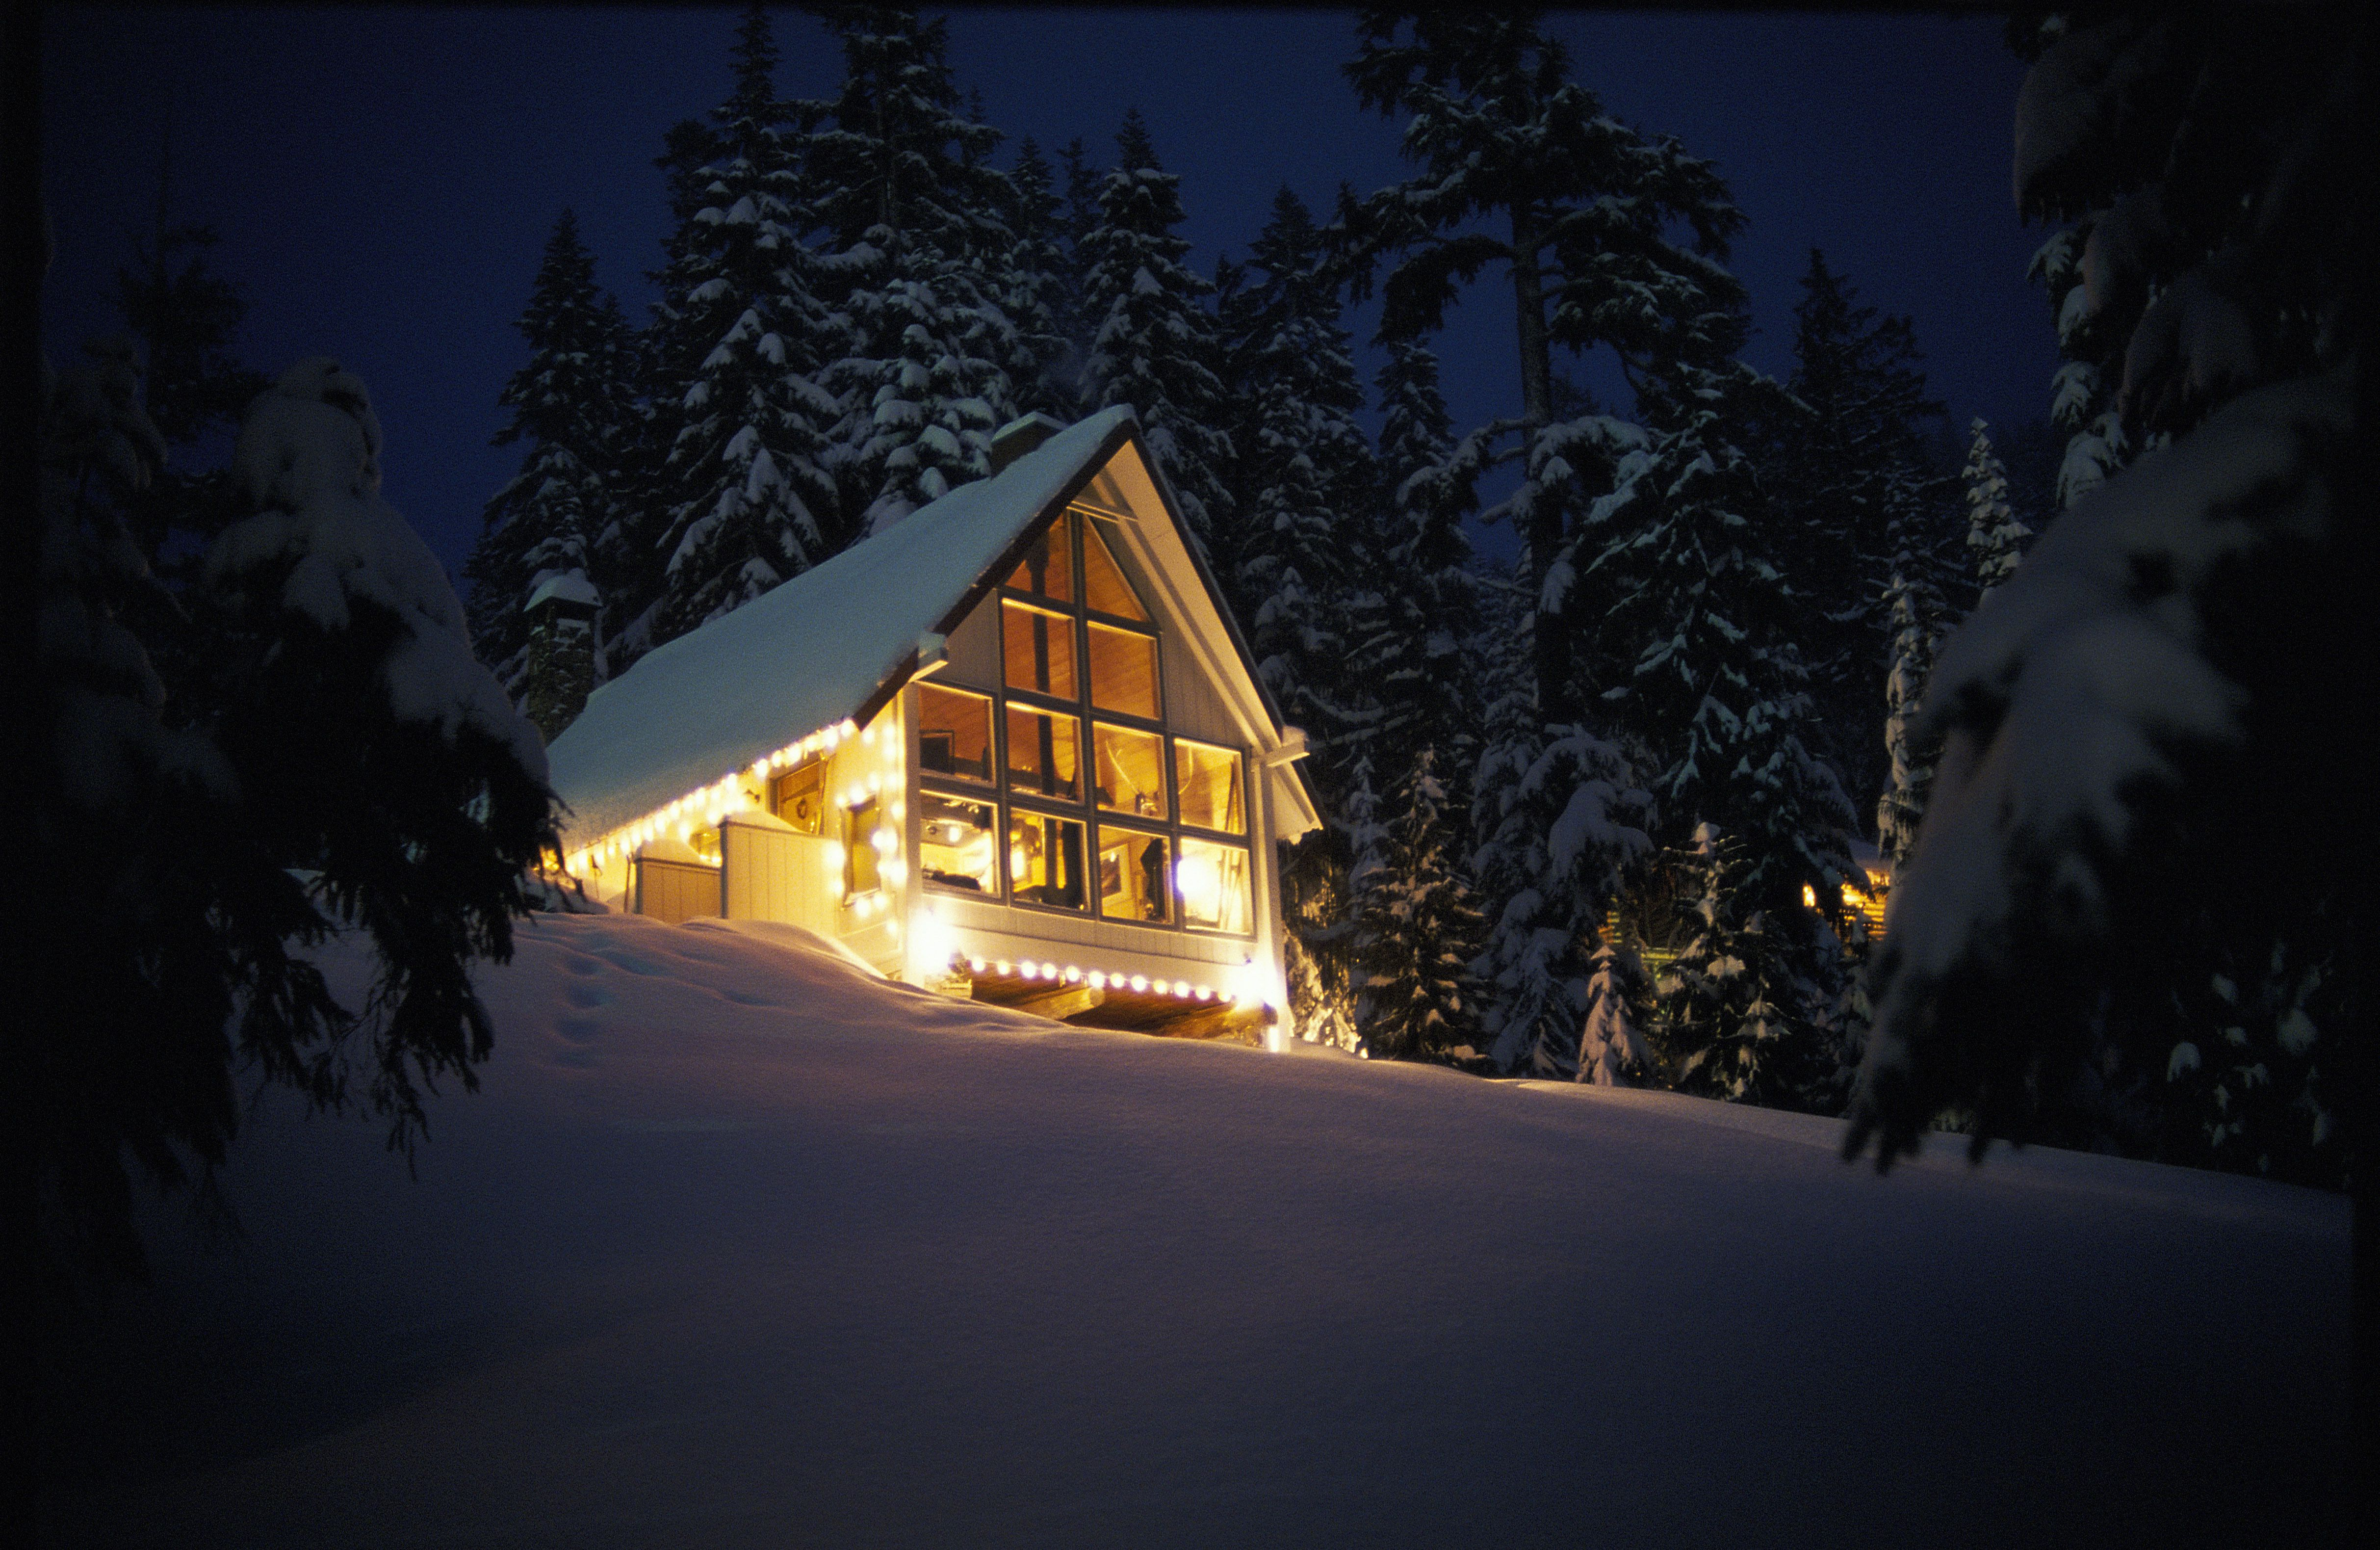 Cabin on top of hill in snow covered landscape at night